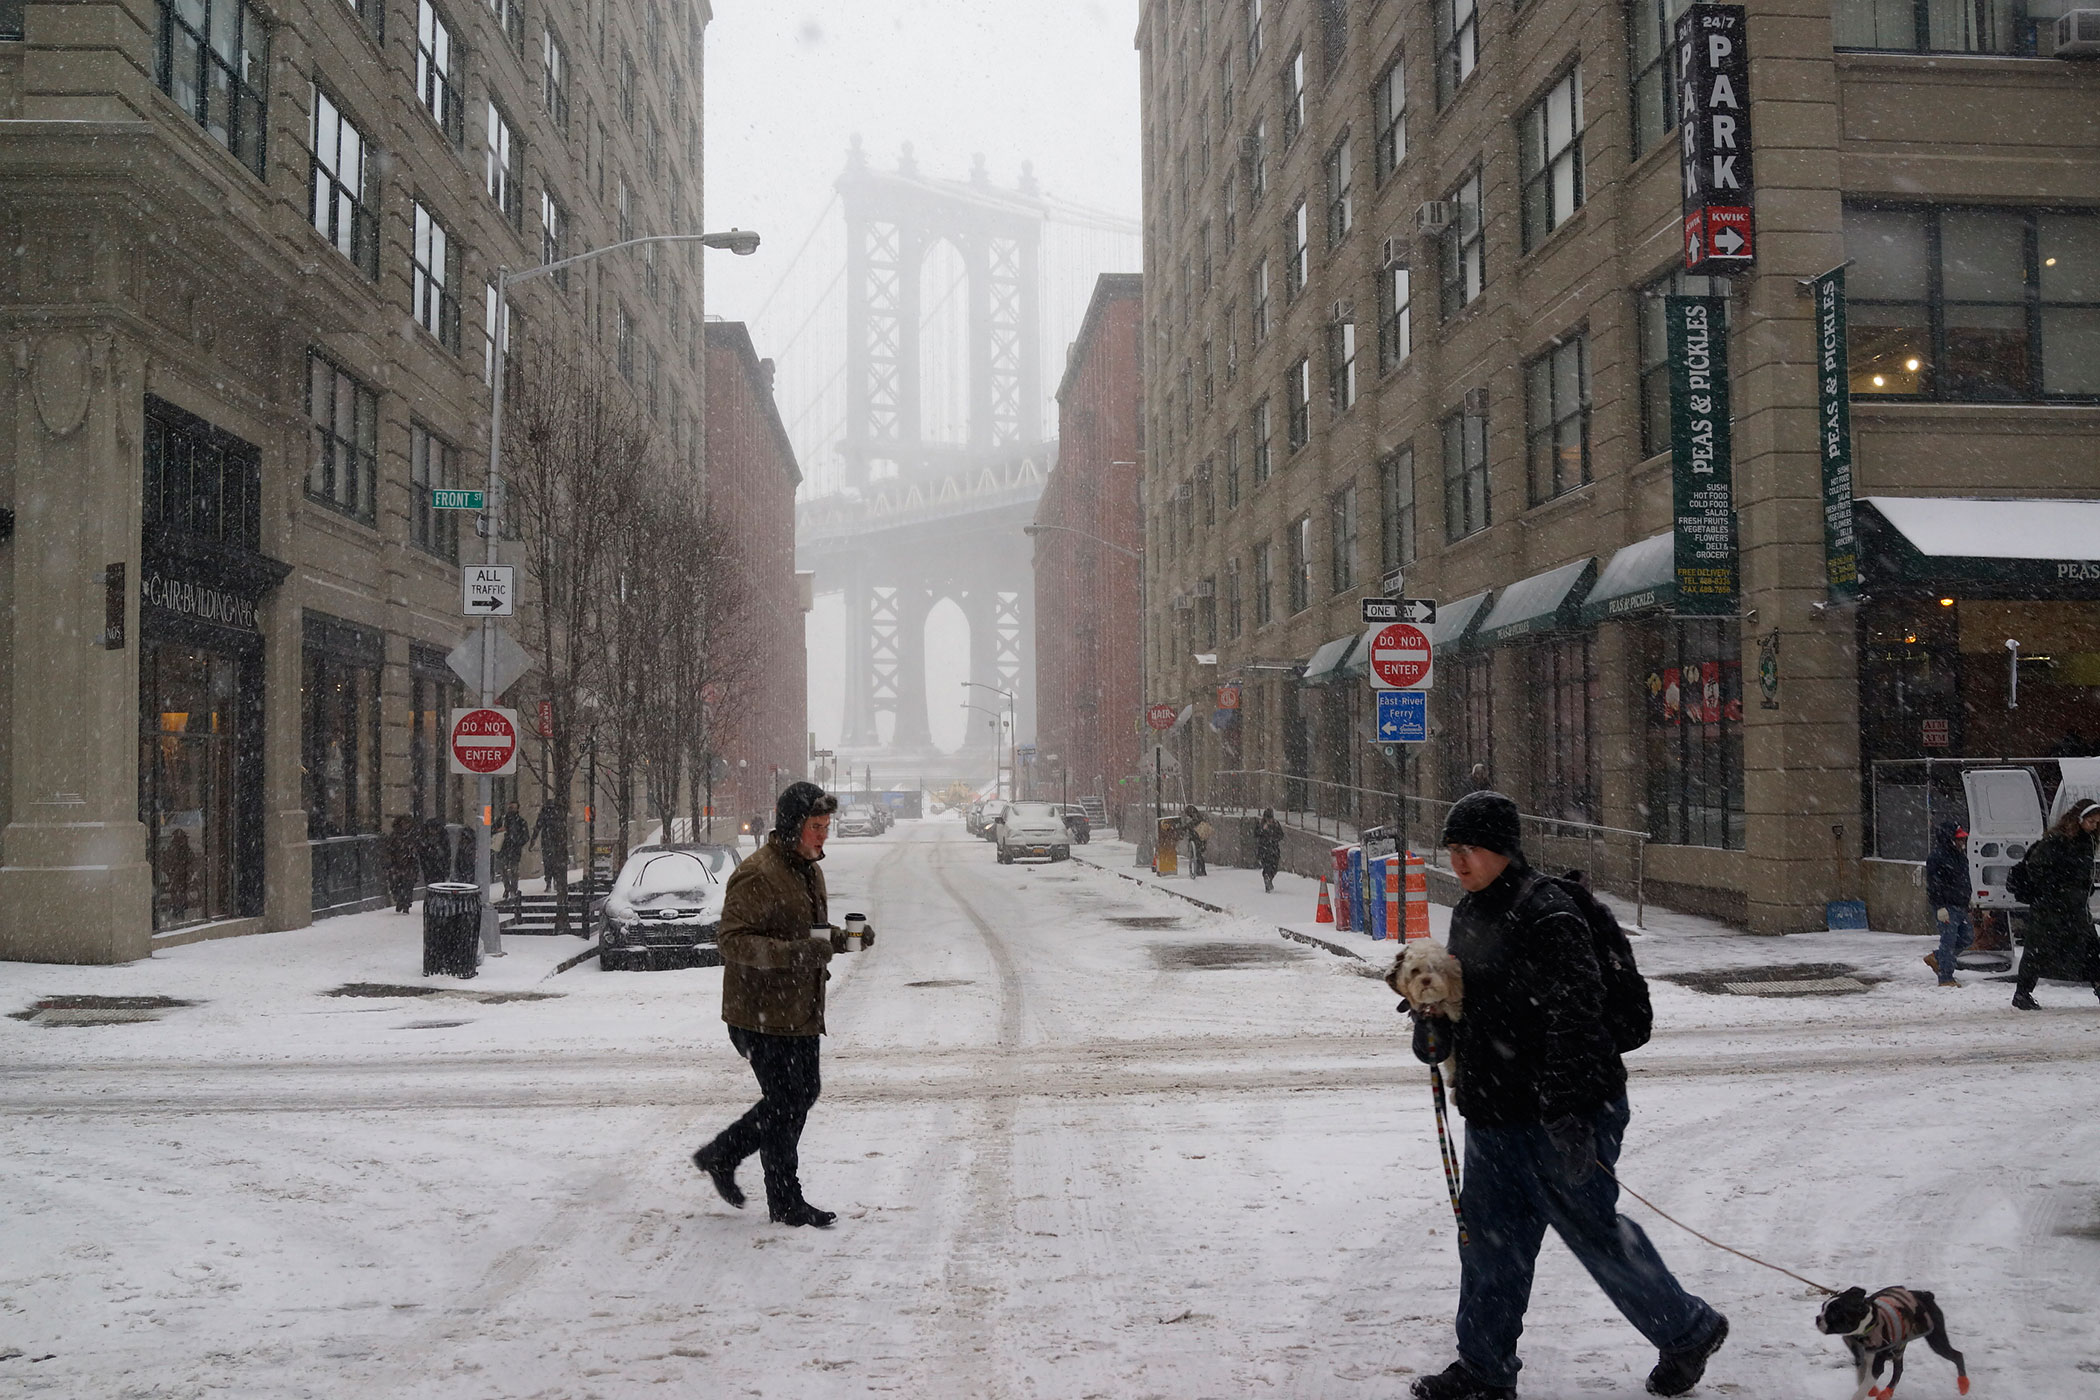 People walk in front of the Manhattan Bridge in the DUMBO neighborhood as it snows in Brooklyn, NY on Jan. 26, 2015